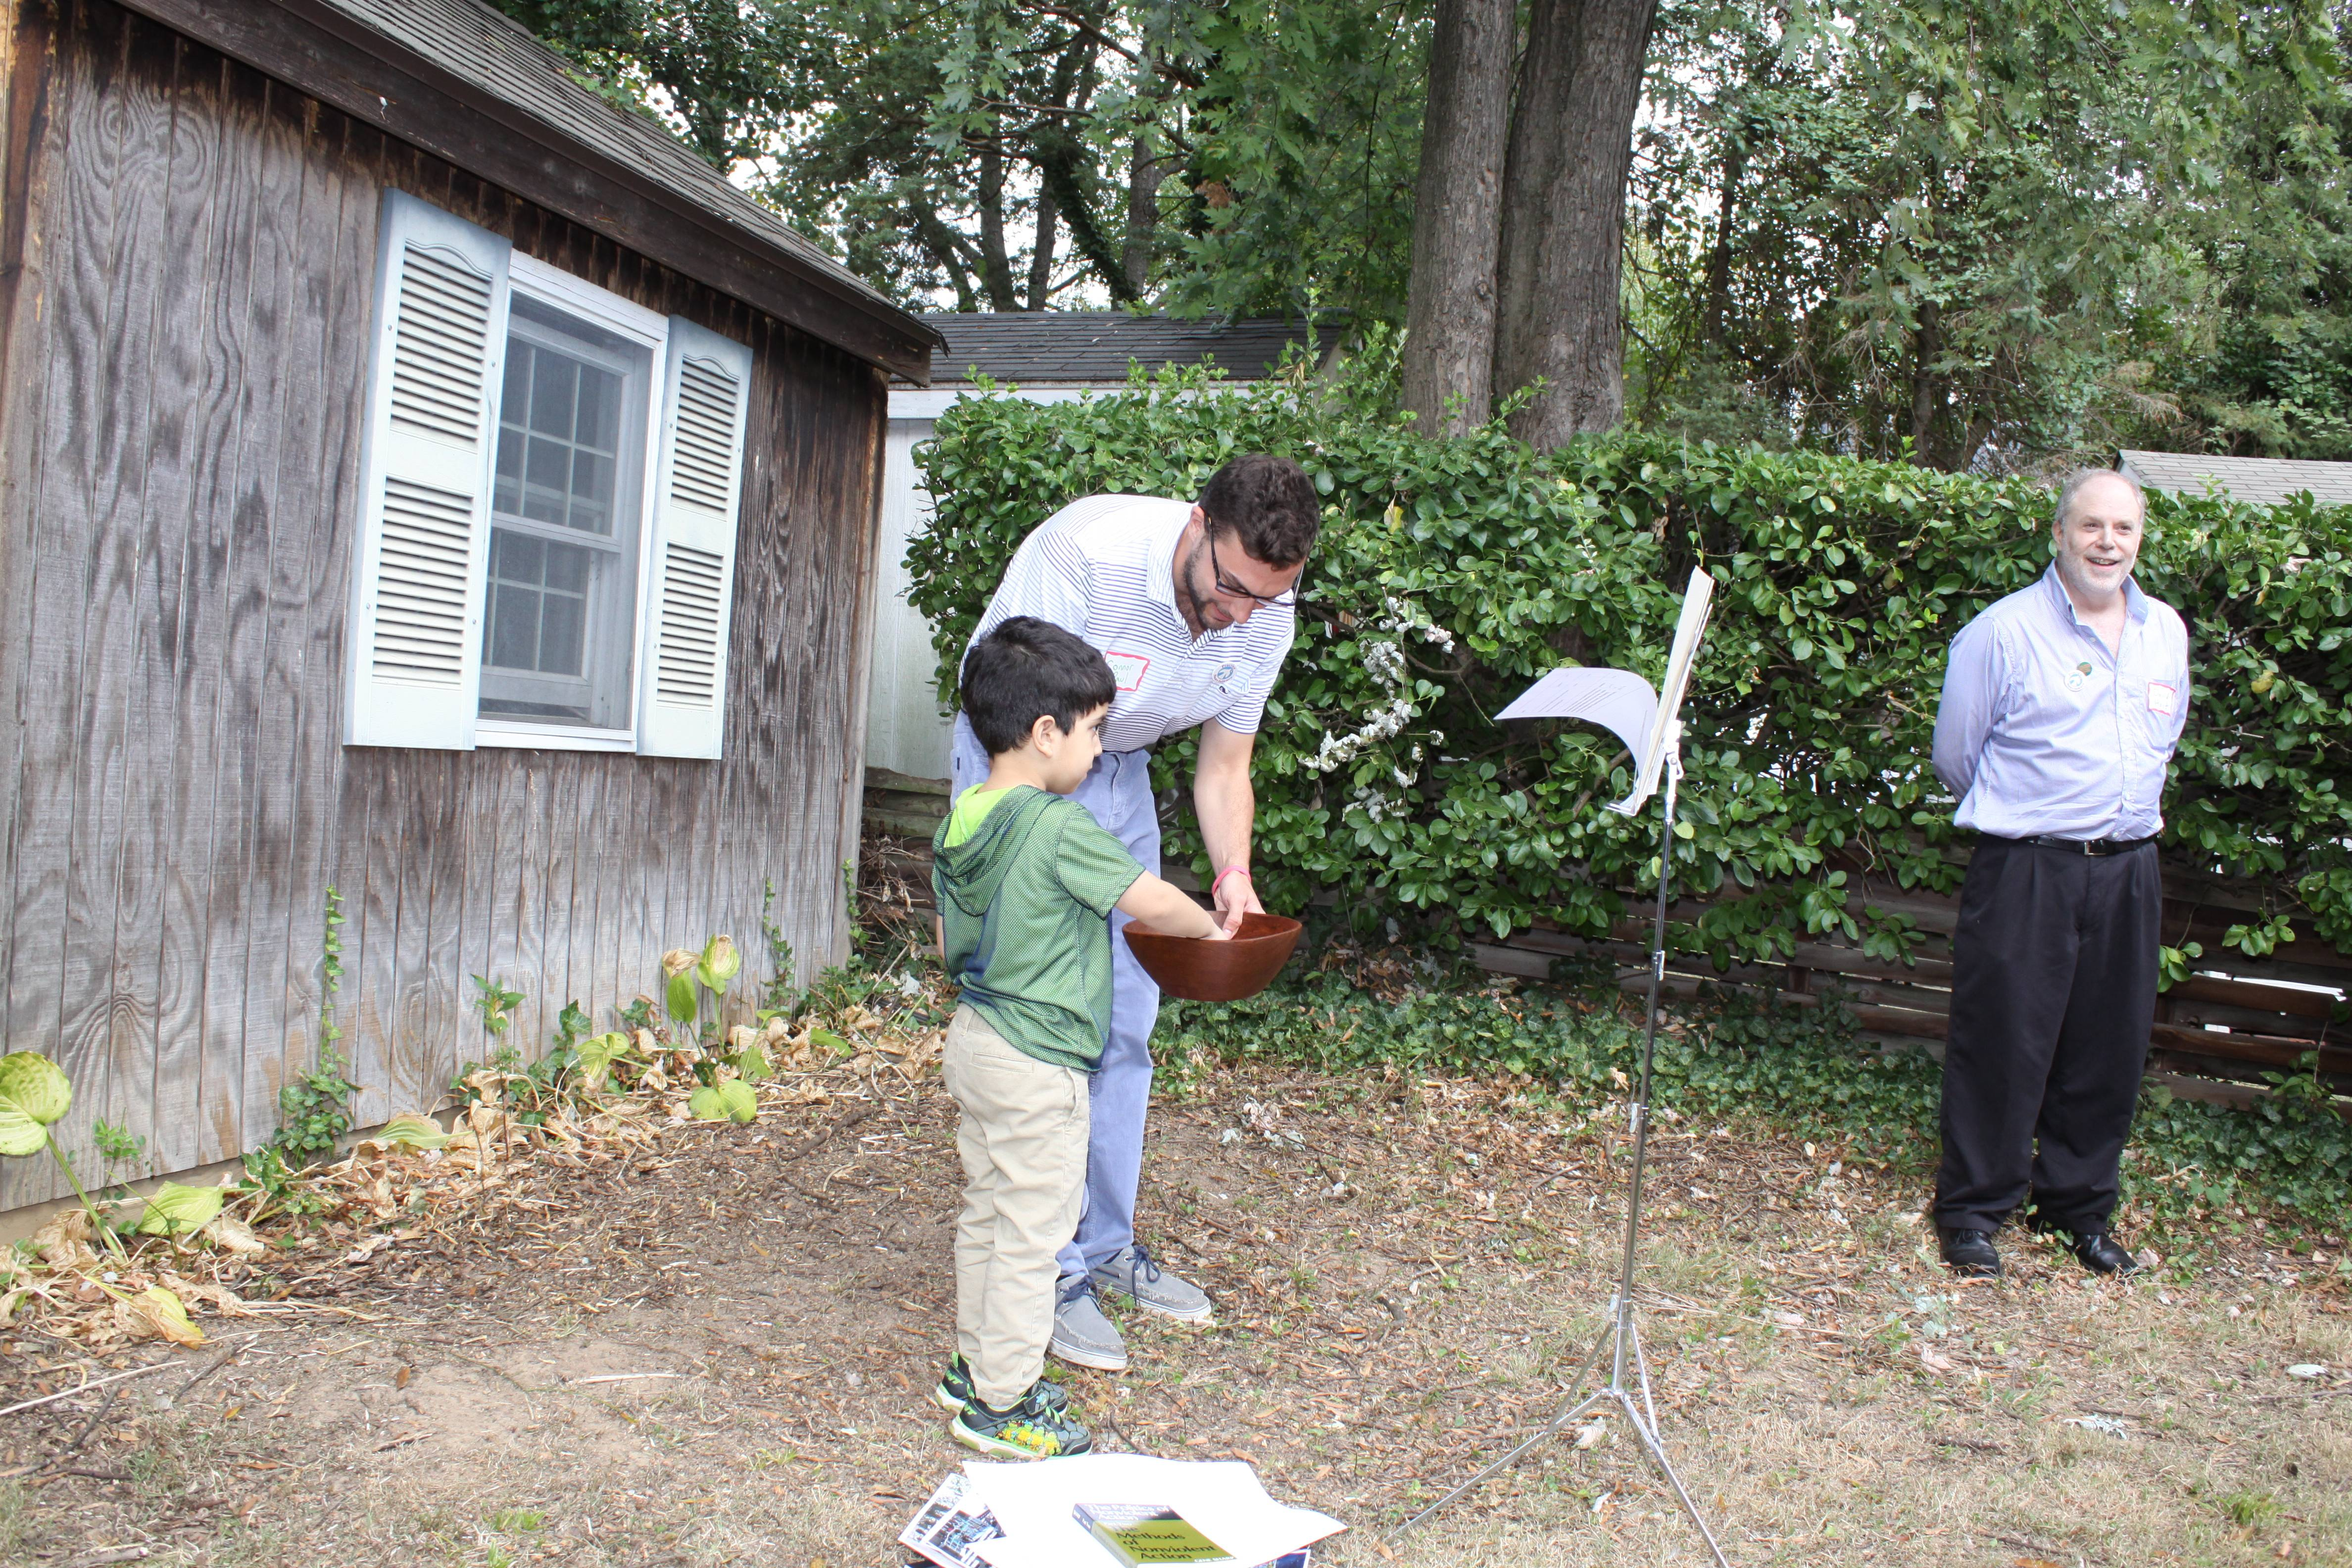 Nonviolence International intern, Connor Paul helps a young boy pick and read out raffle ticket numbers.